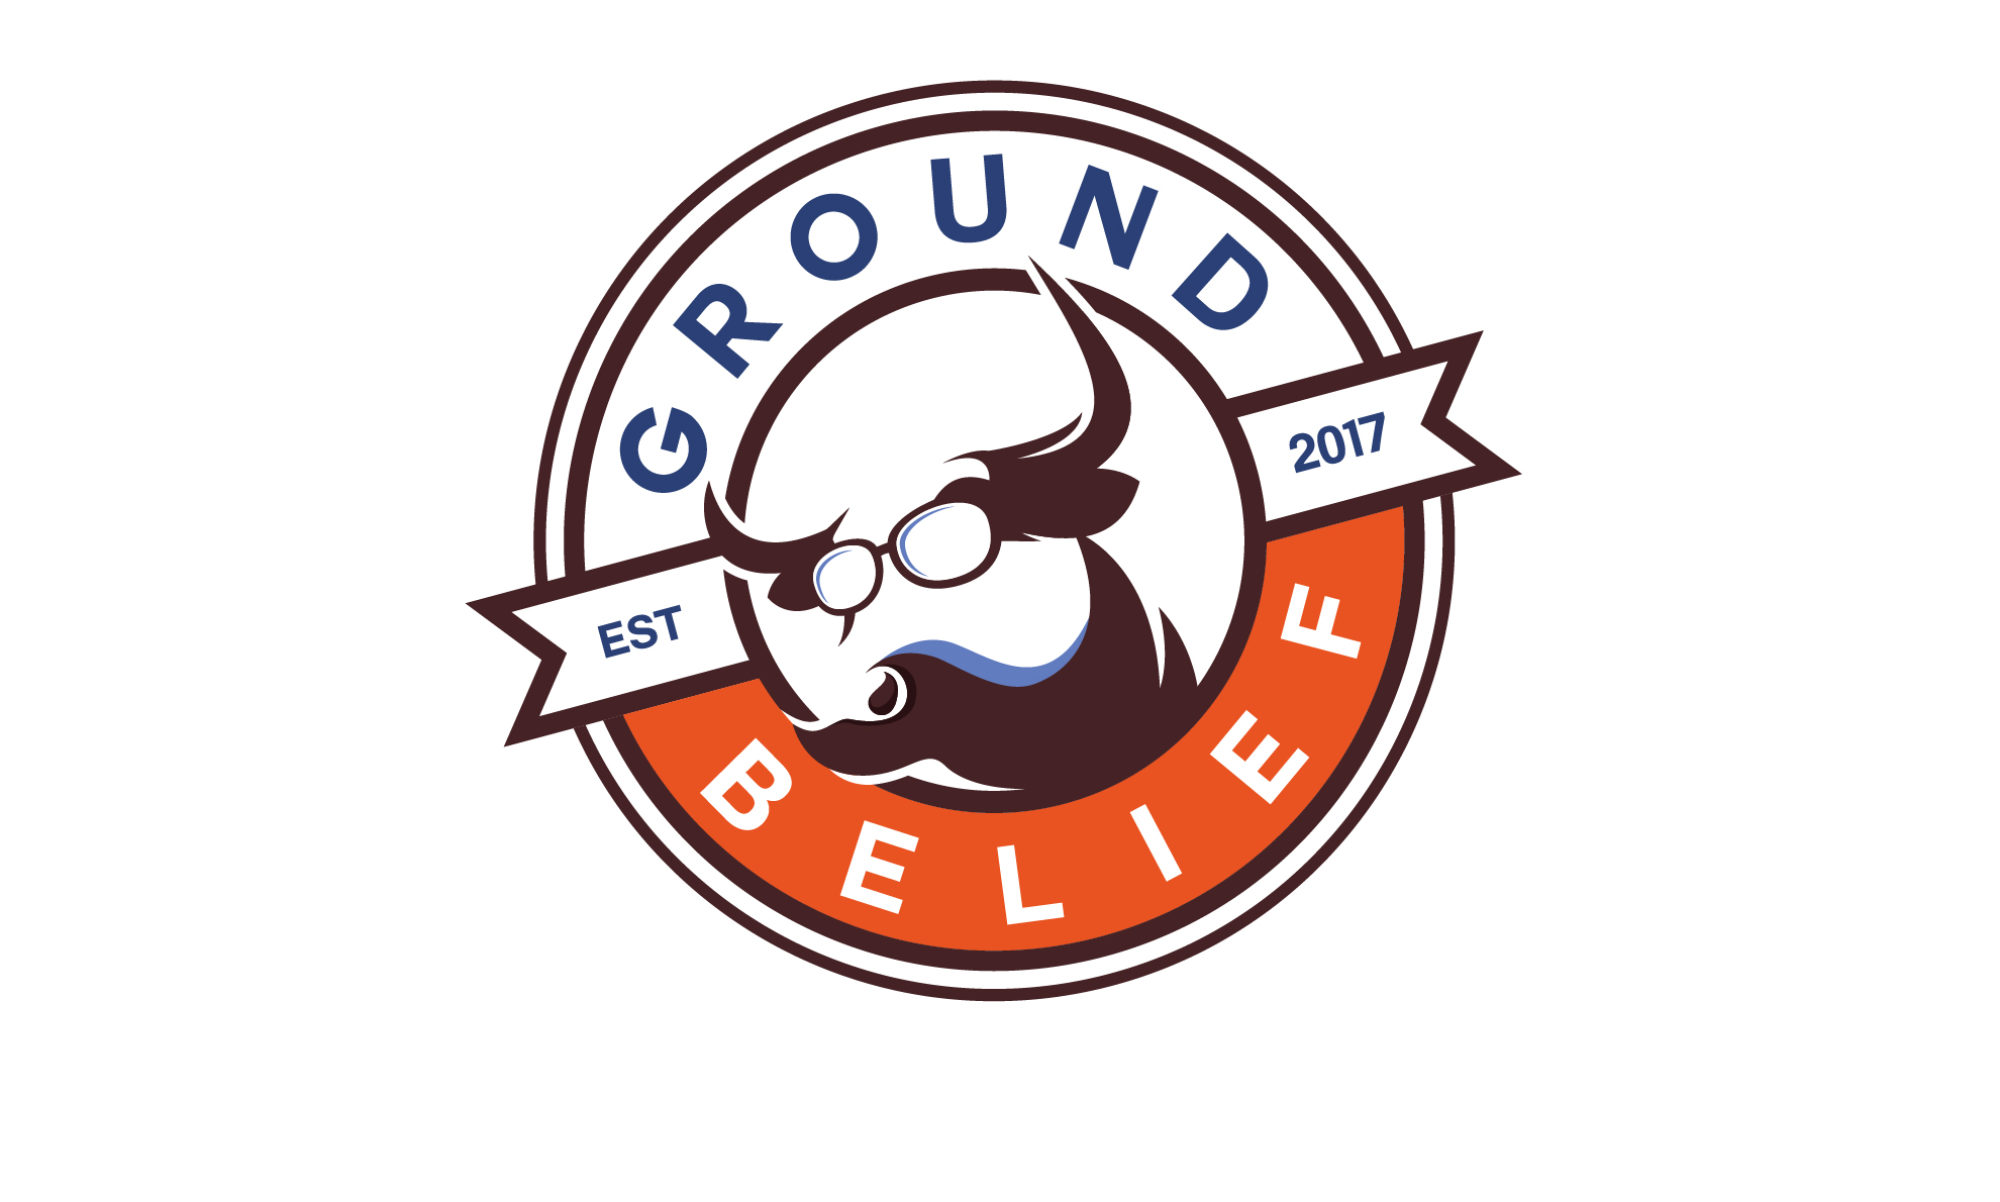 GROUND BELIEF